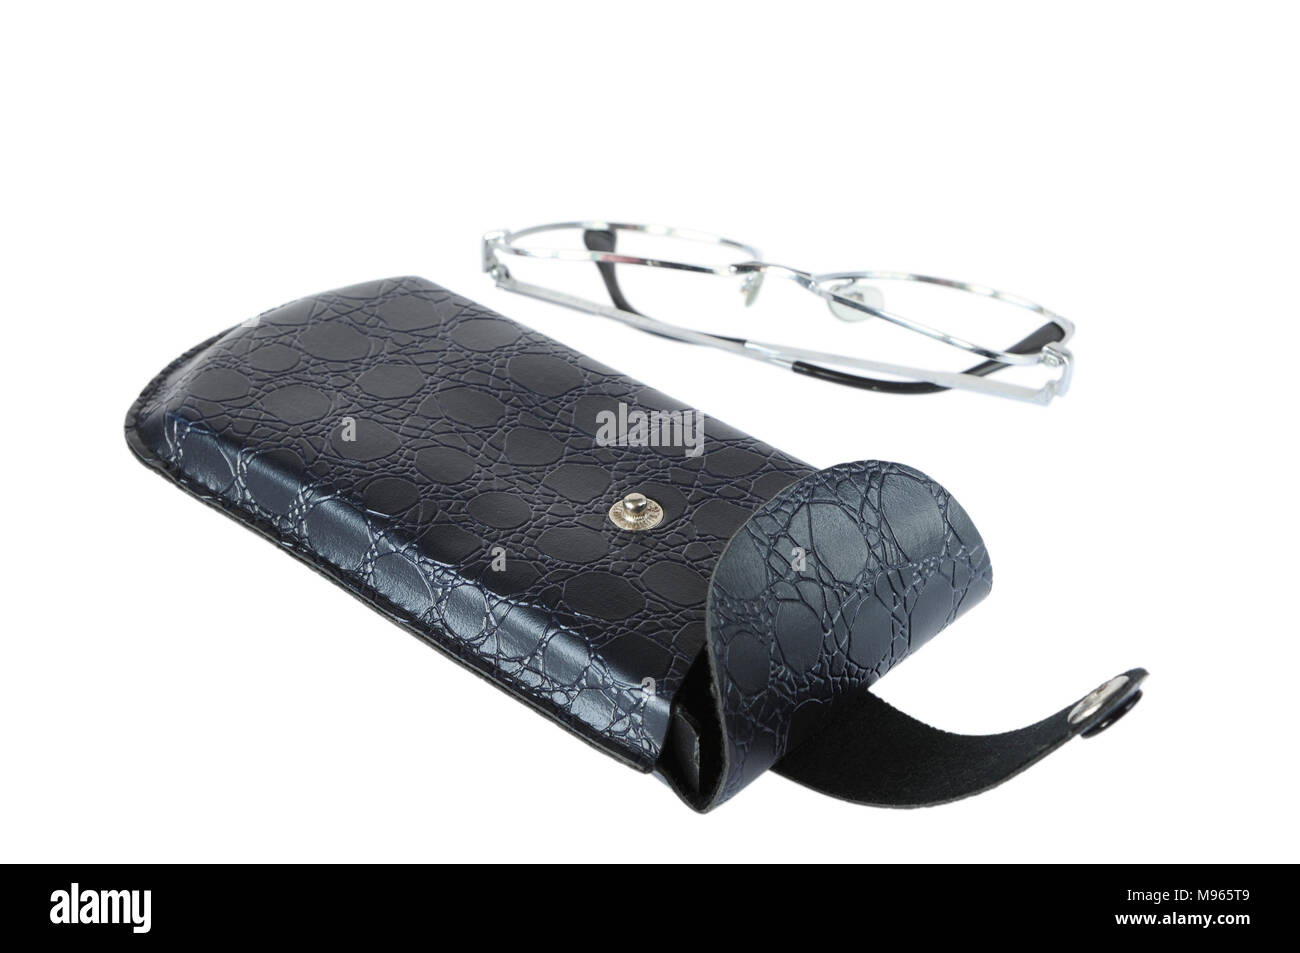 Spectacle case isolated on white - Stock Image